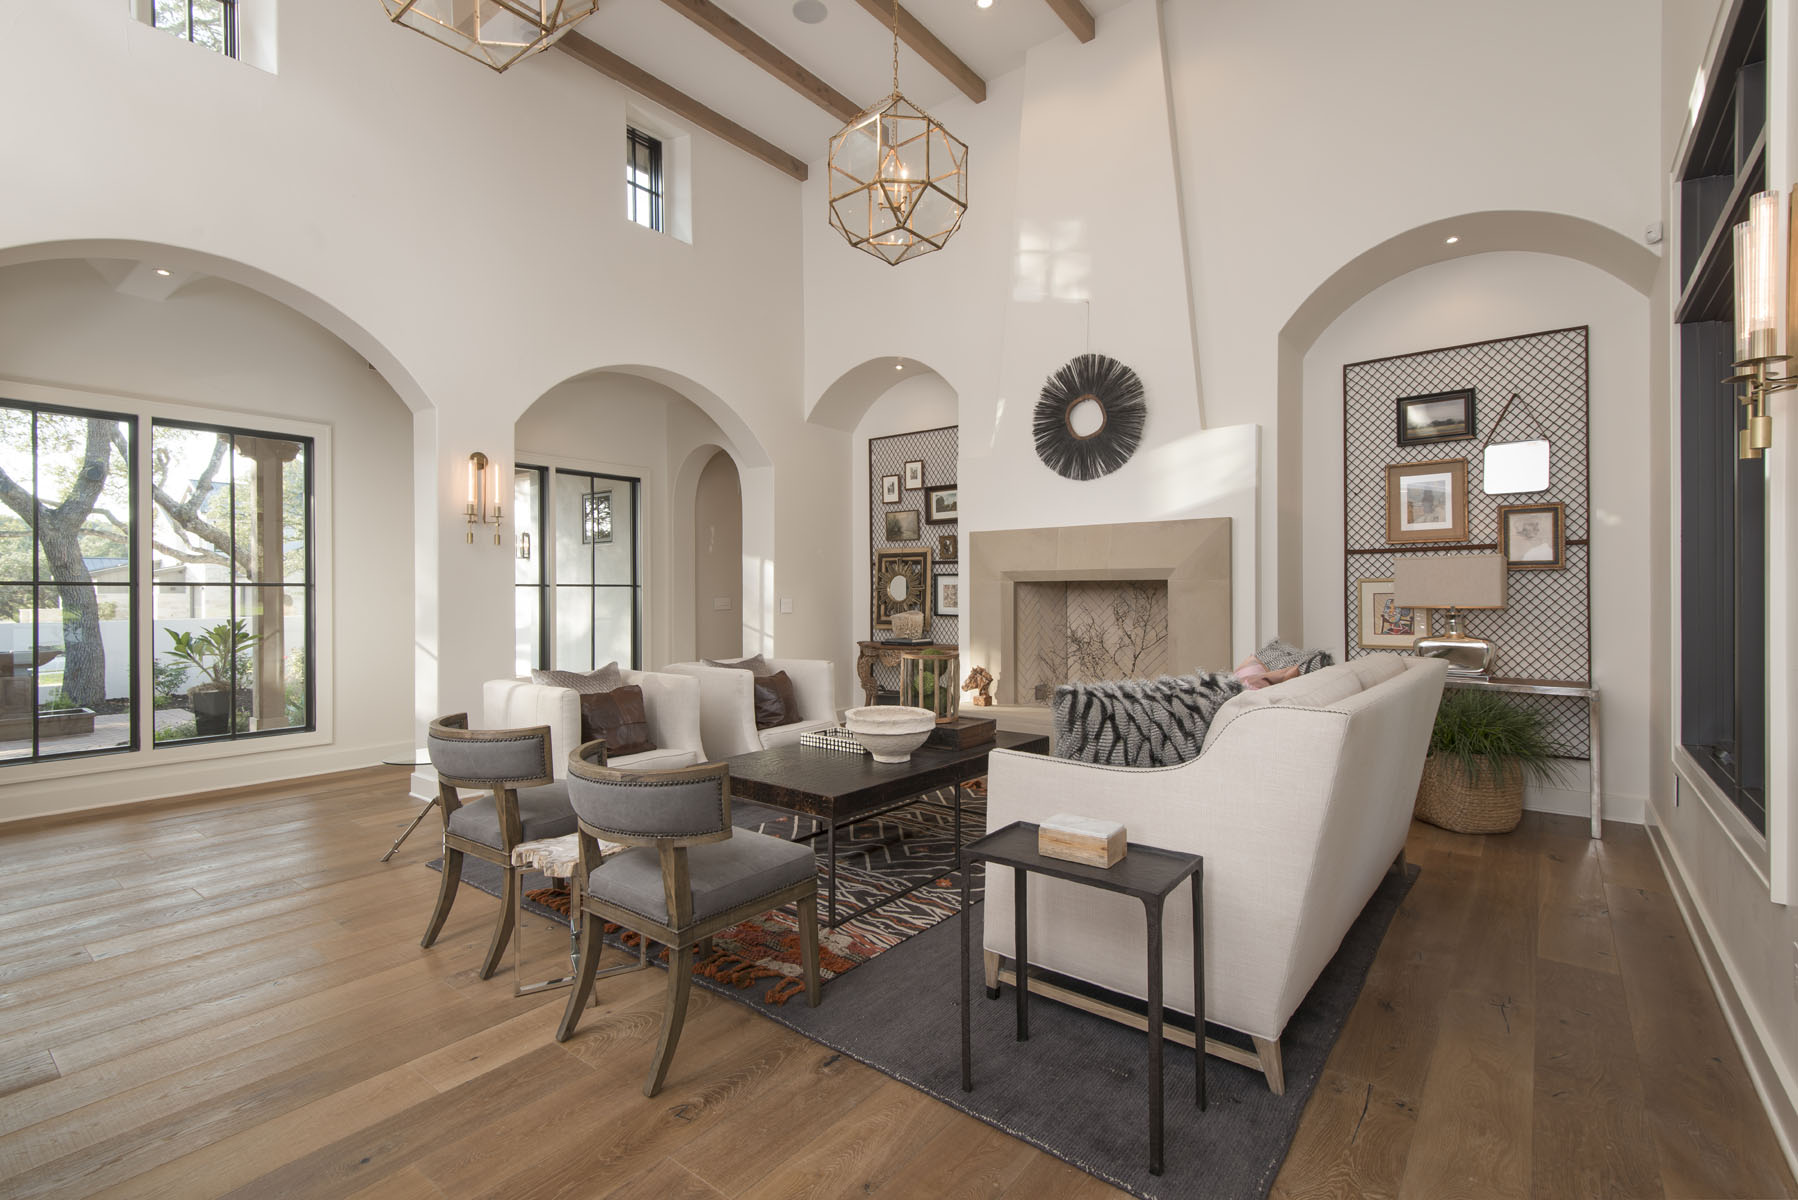 Additional photo for property listing at Dripping Springs Custom Home 363 Waters Edge Cv Dripping Springs, Texas 78620 Estados Unidos